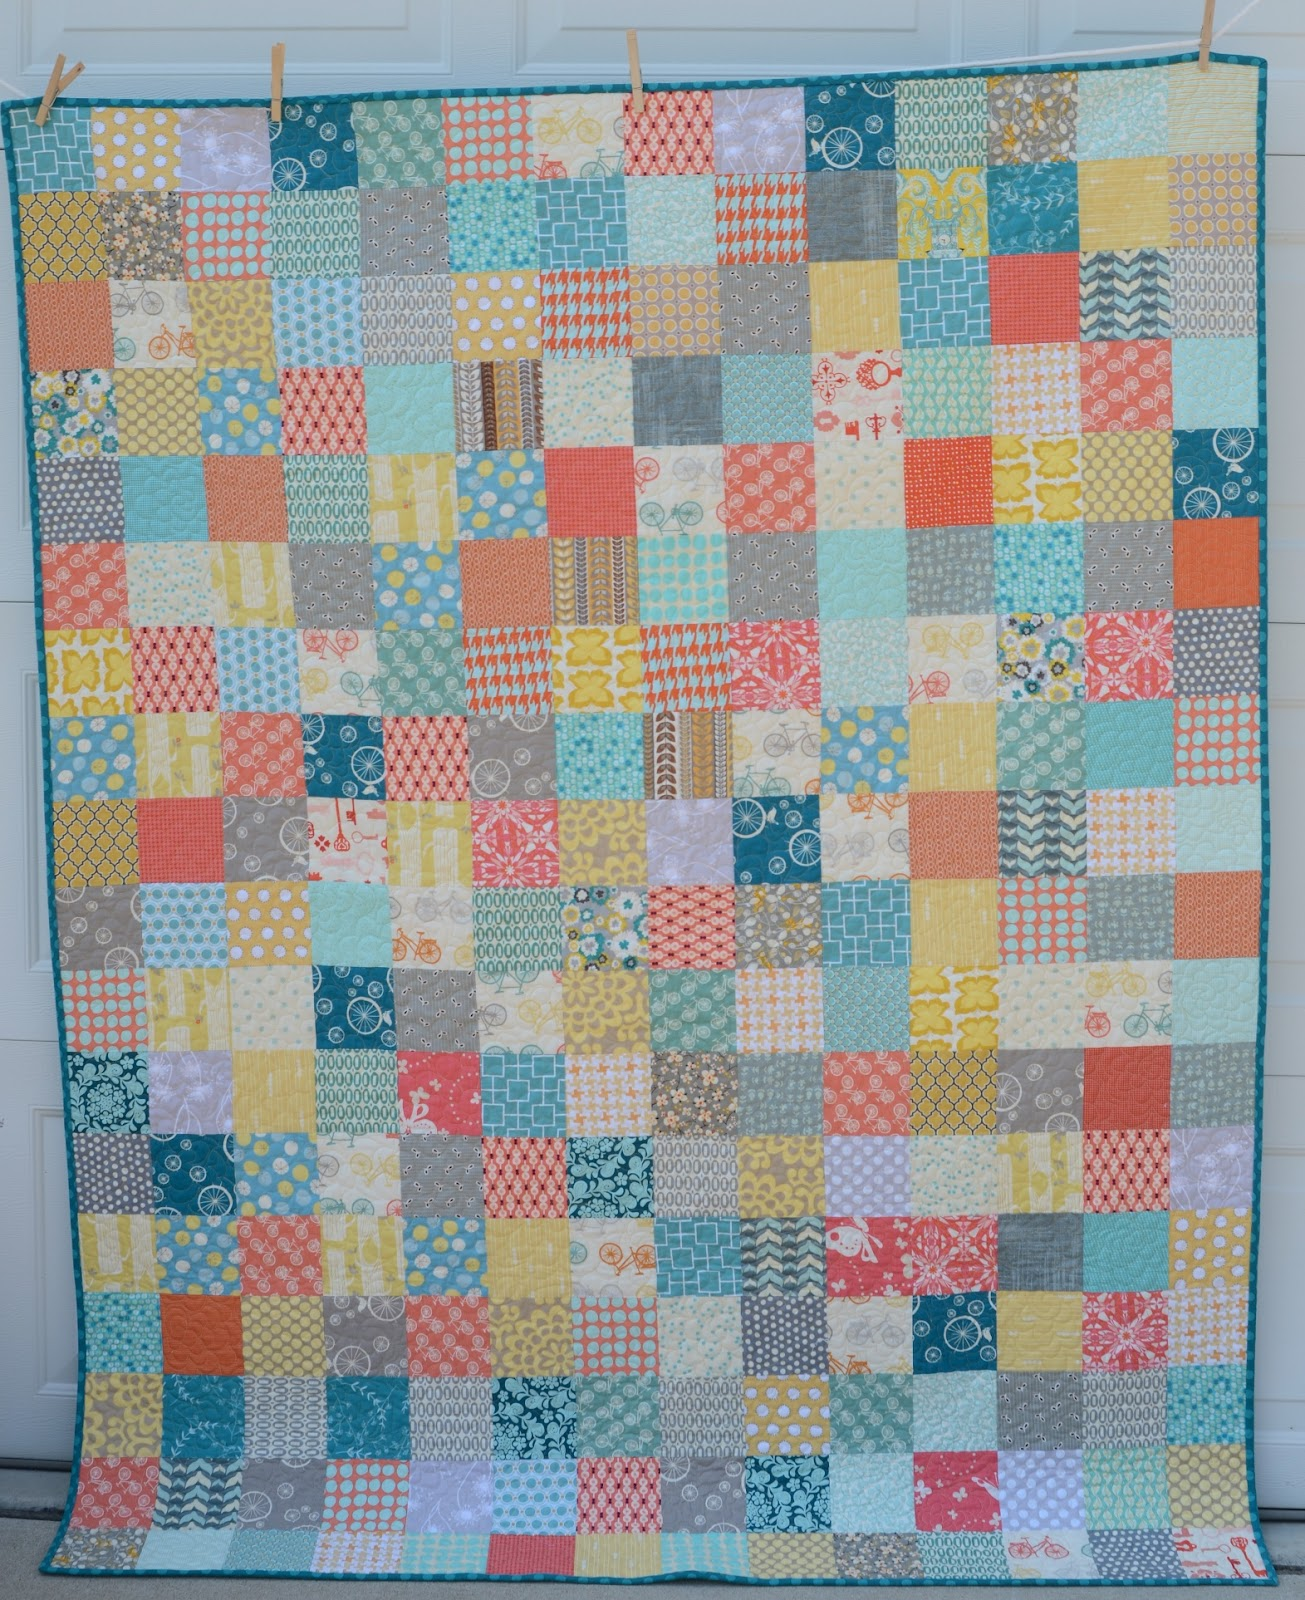 Hyacinth Quilt Designs: A Simple Patchwork quilt